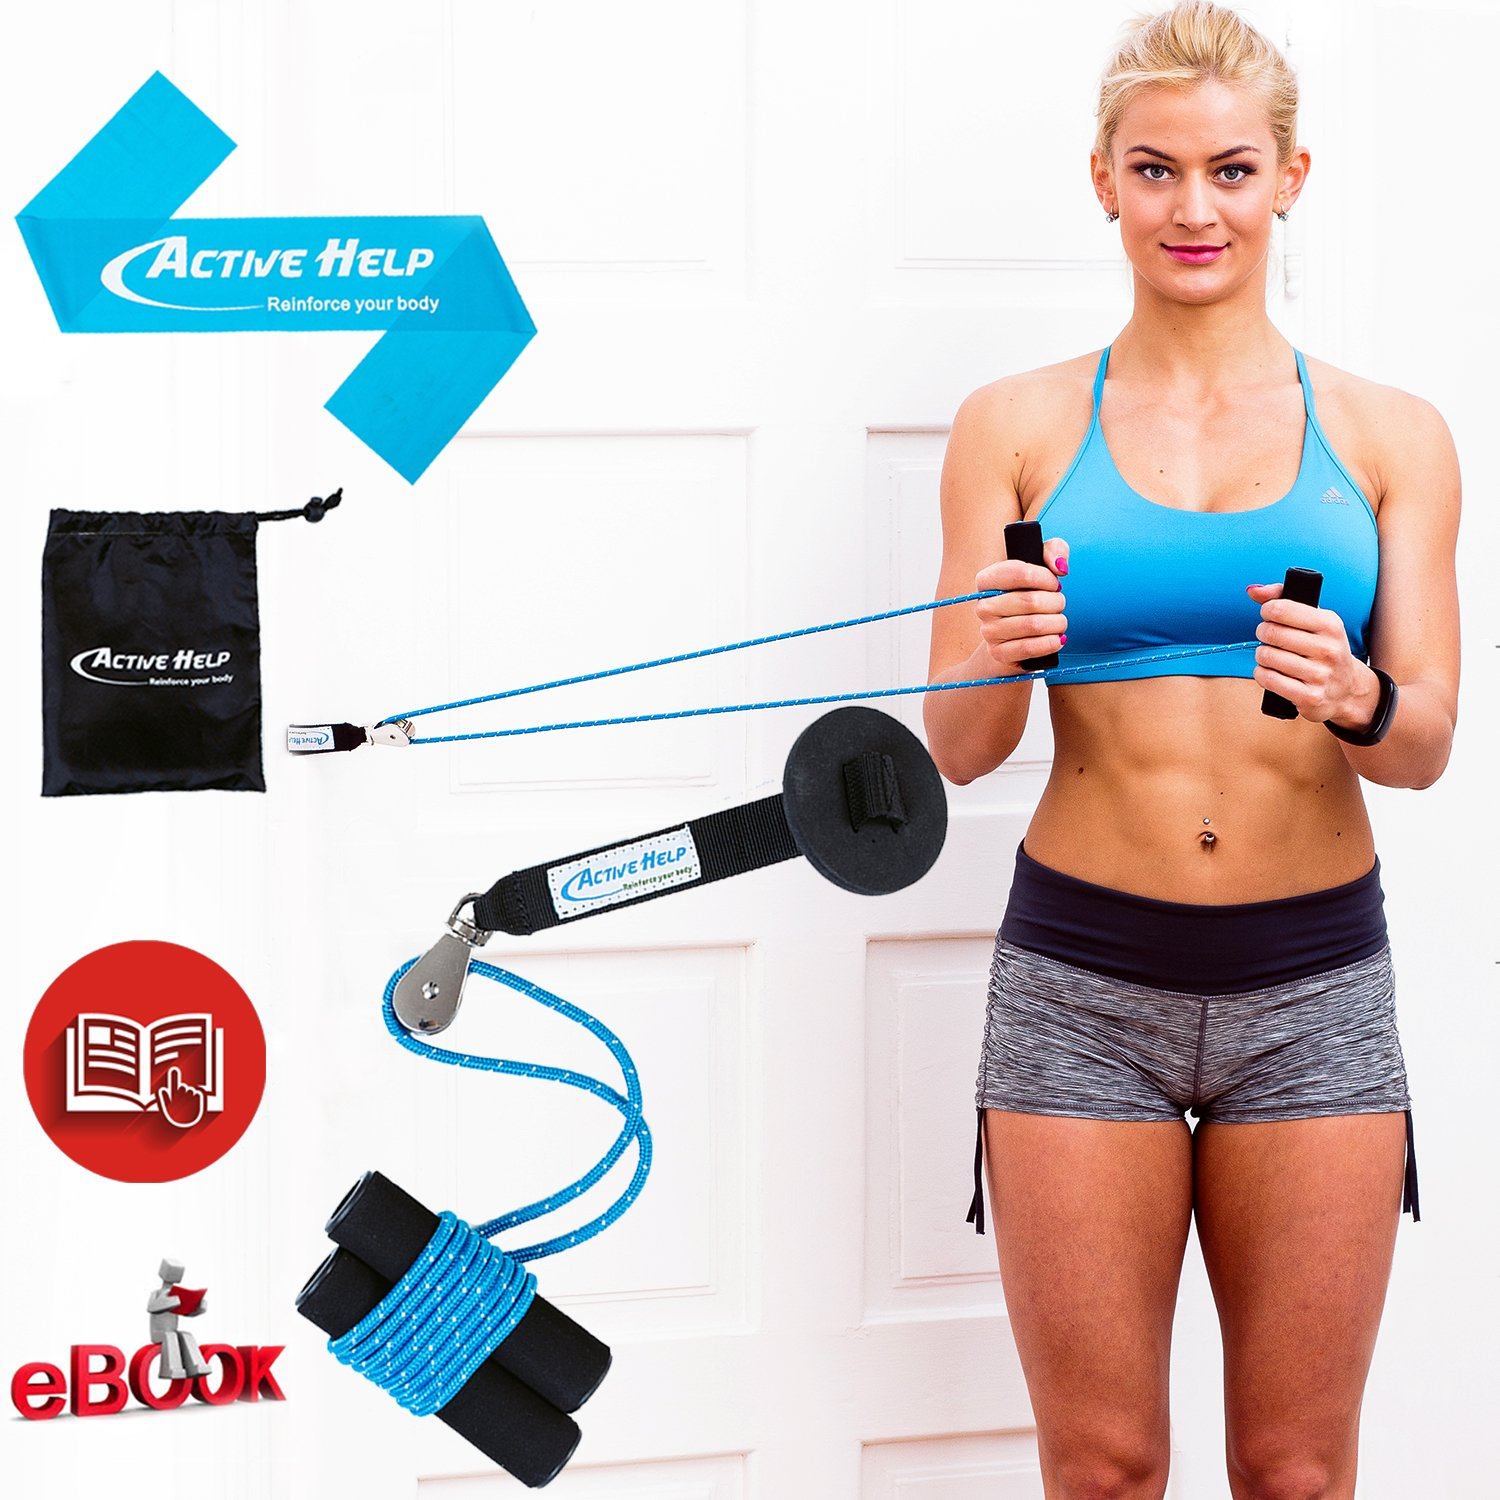 Shoulder Pulley Therapy Bundle - Home Exercise Over Door Pulleys System to Increase Range of Motion, Strength & Recovery + Light Resistance Band + Instructions + Carry Bag + Ebook by Active Help